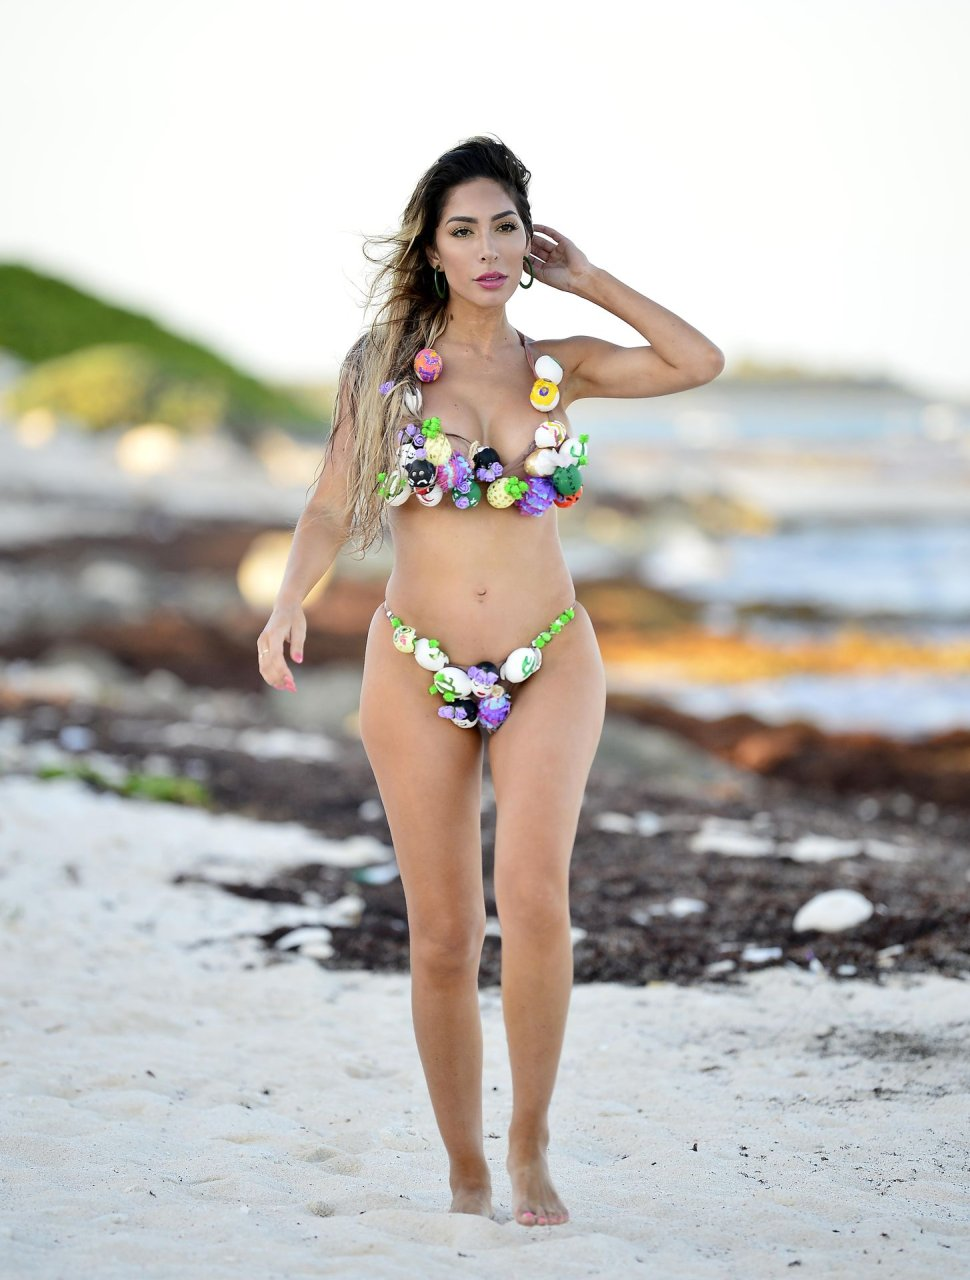 Farrah Abraham covers her body in Easter eggs as she shoots an Easter themed bikini shoot during the sunset 21-04-2019